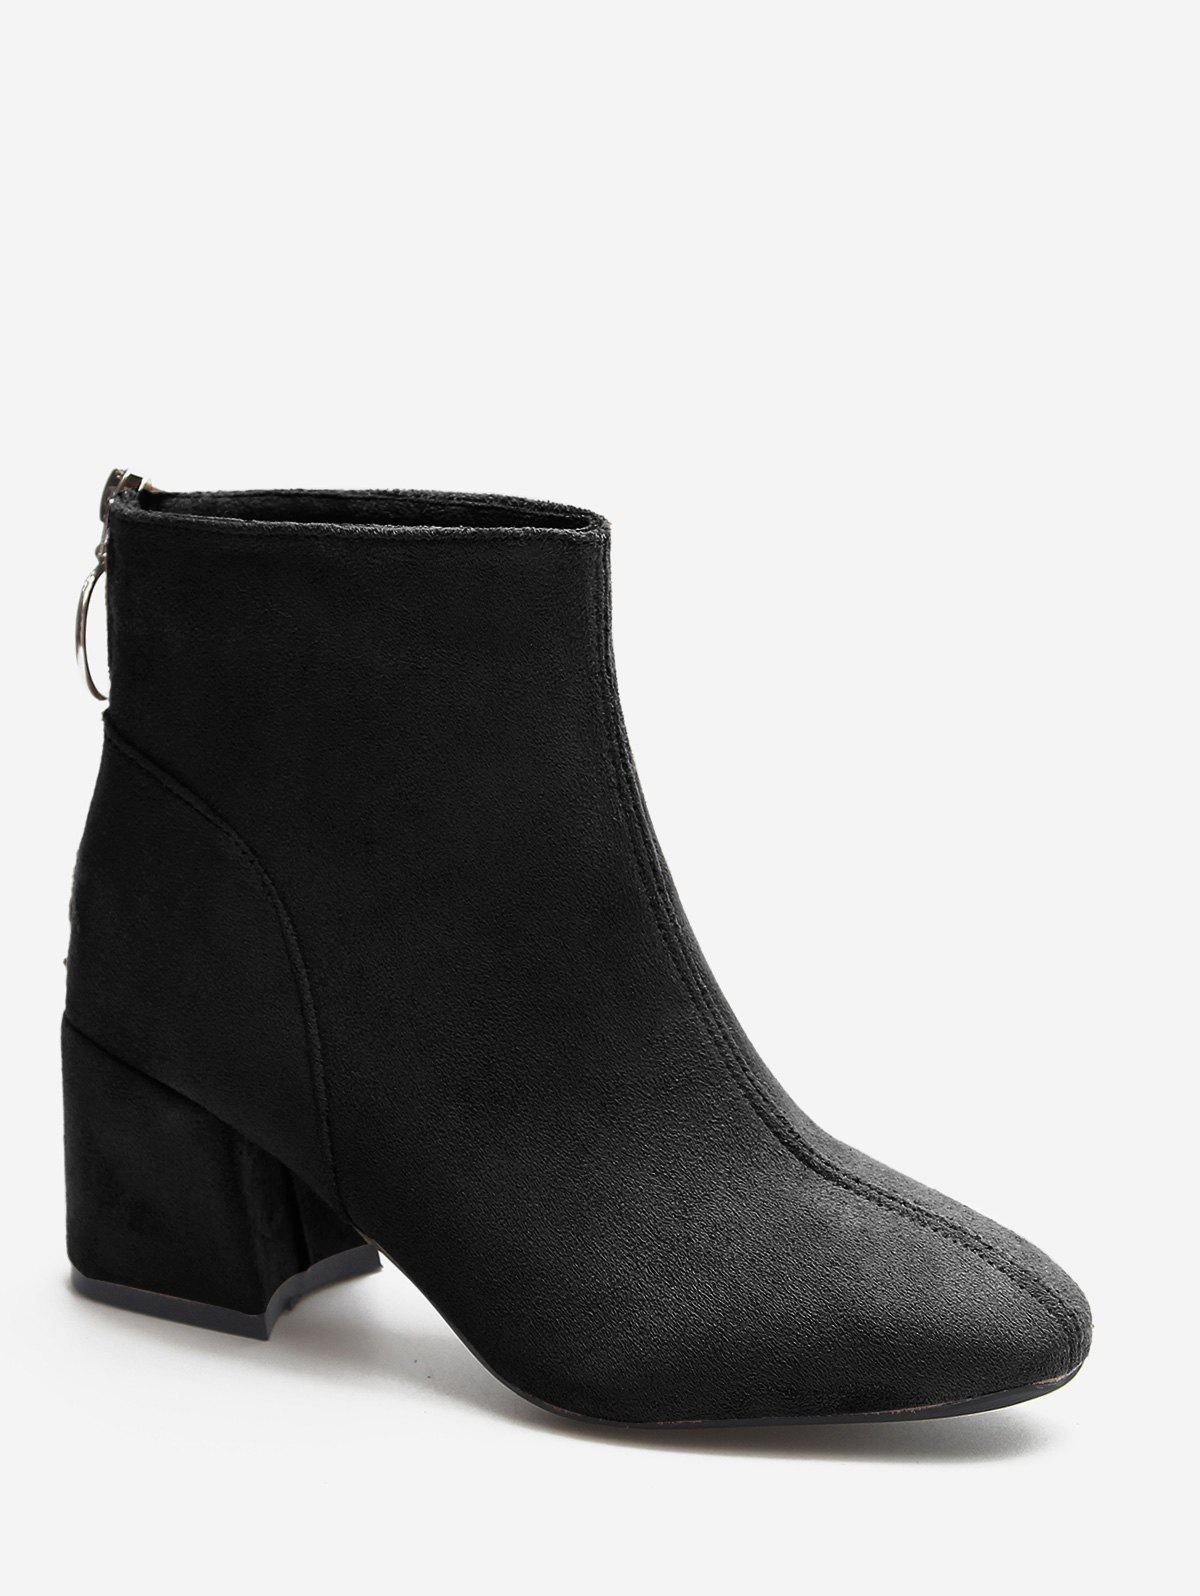 Shop Pointed Toe Block Heel Martin Boots